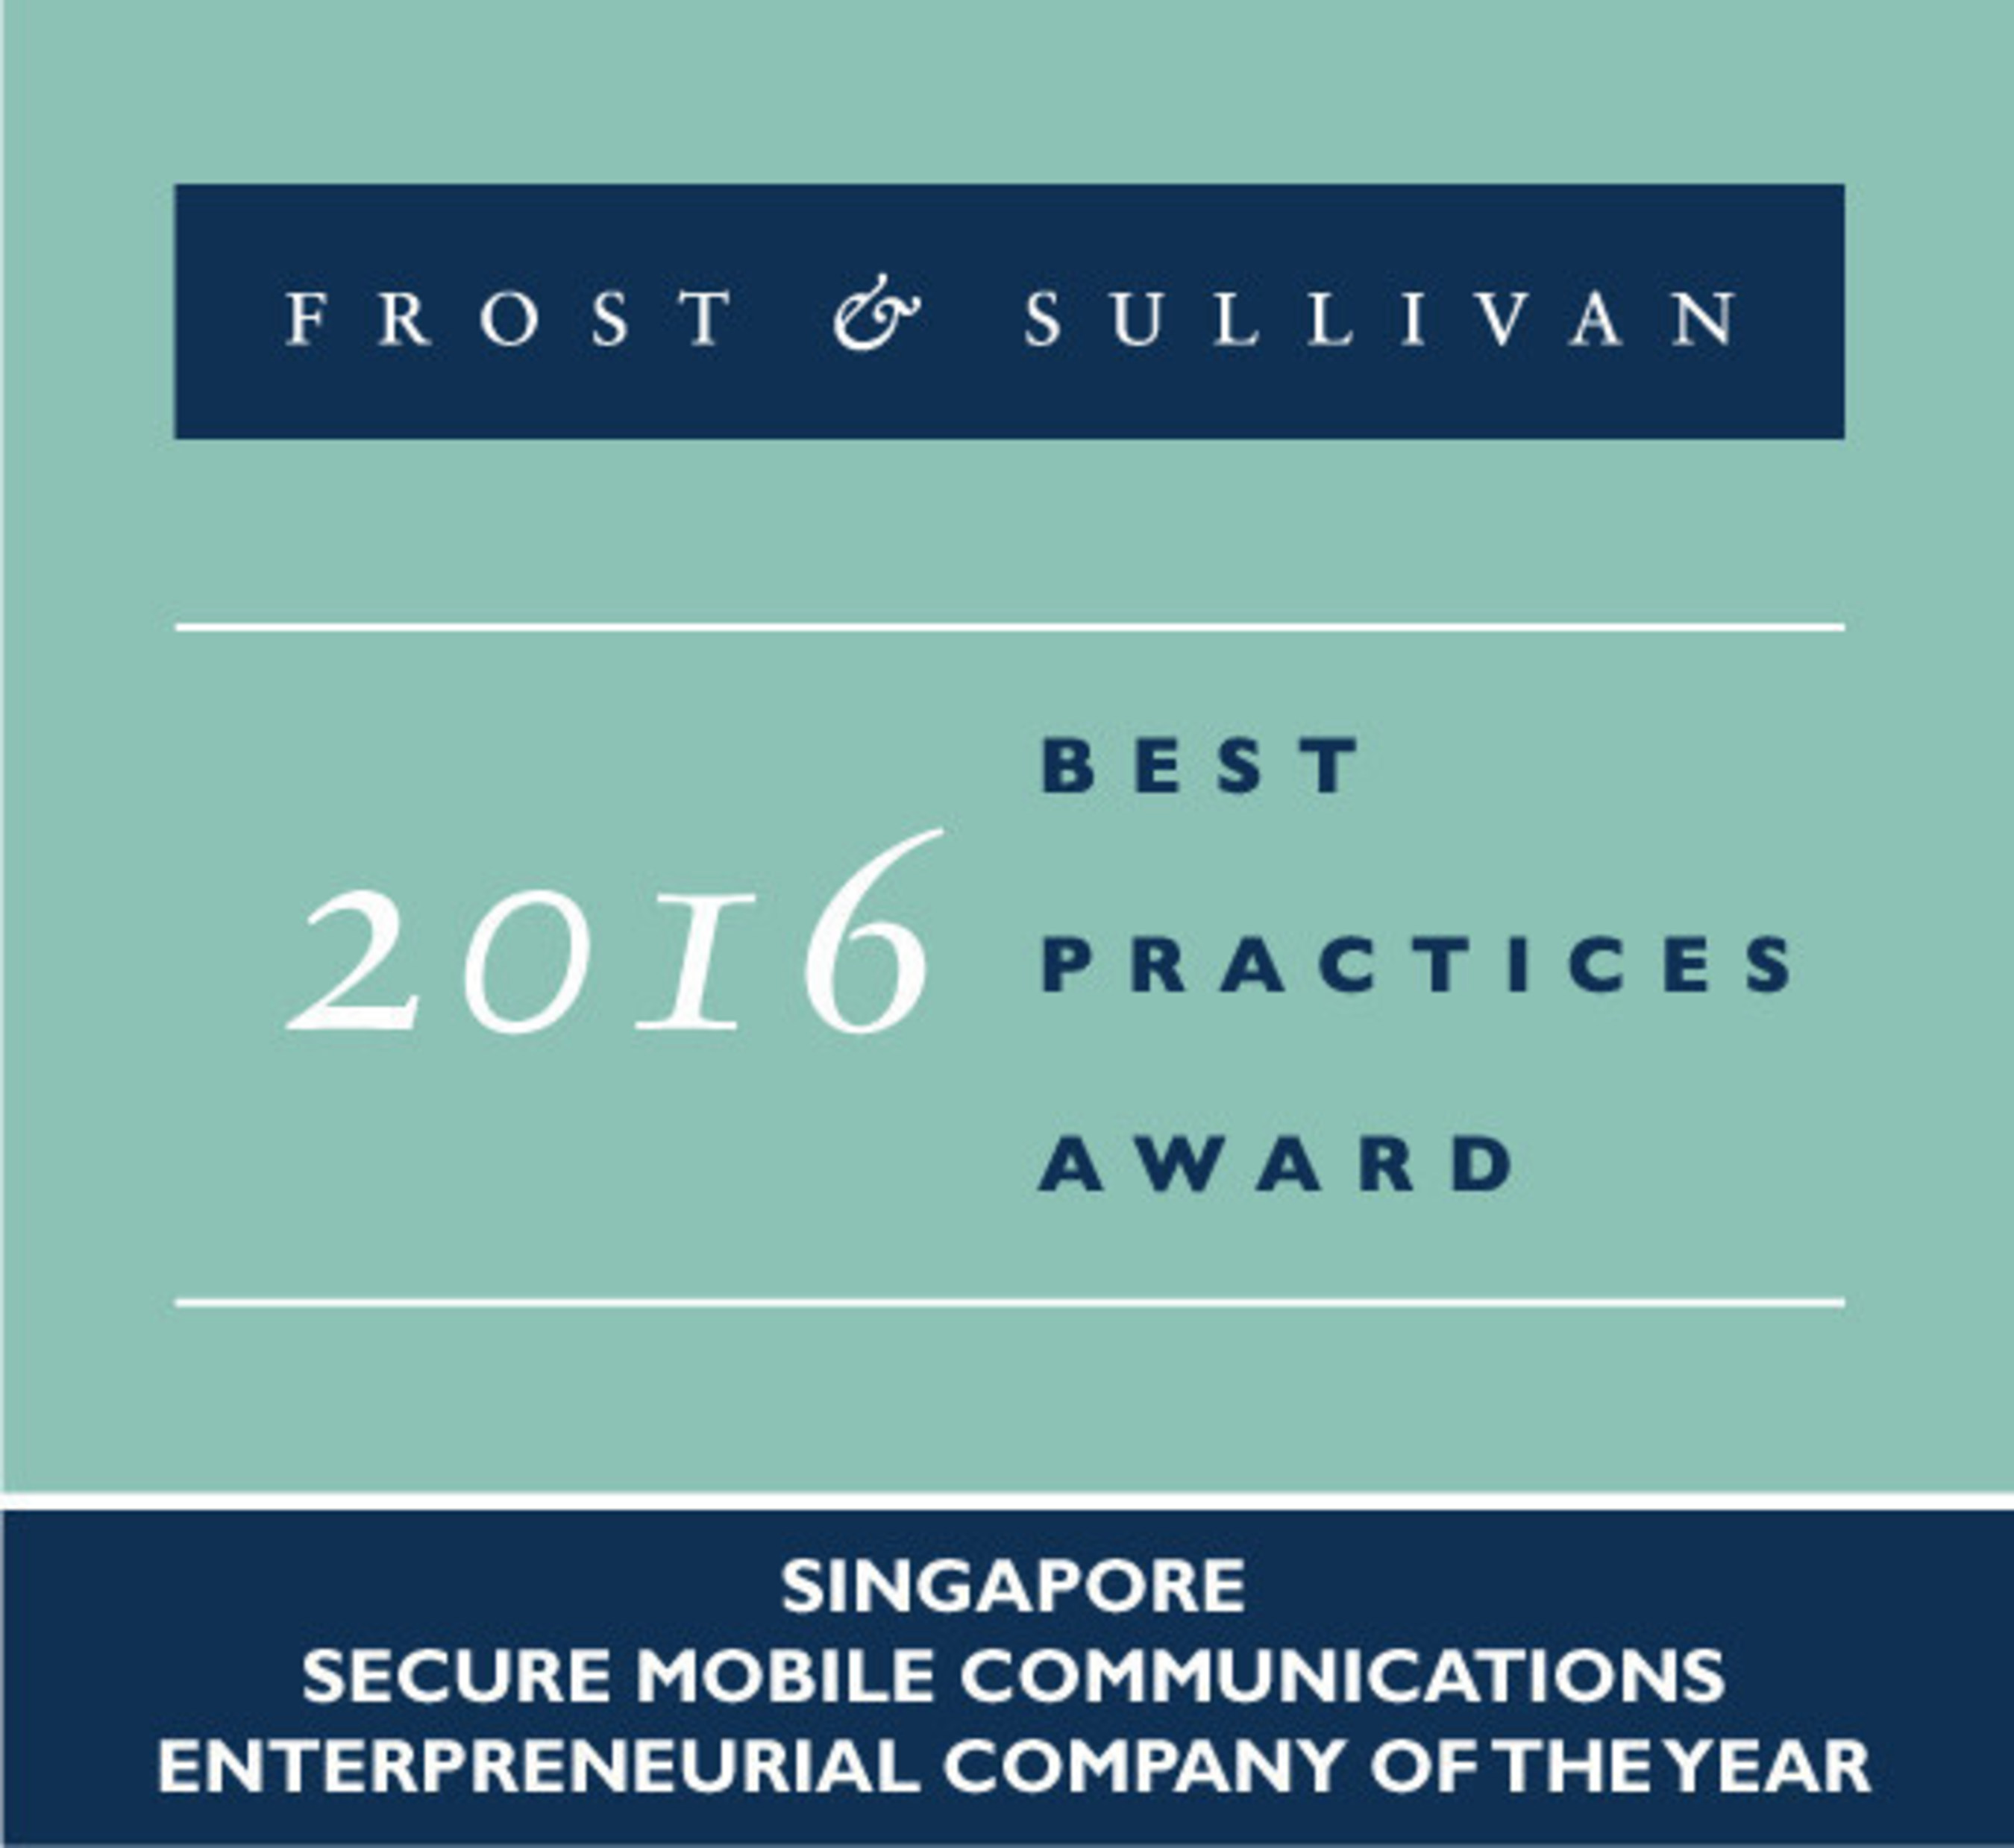 TreeBox Solutions named 2016 Frost & Sullivan Singapore Secure Mobile Communications Entrepreneurial Company of the Year